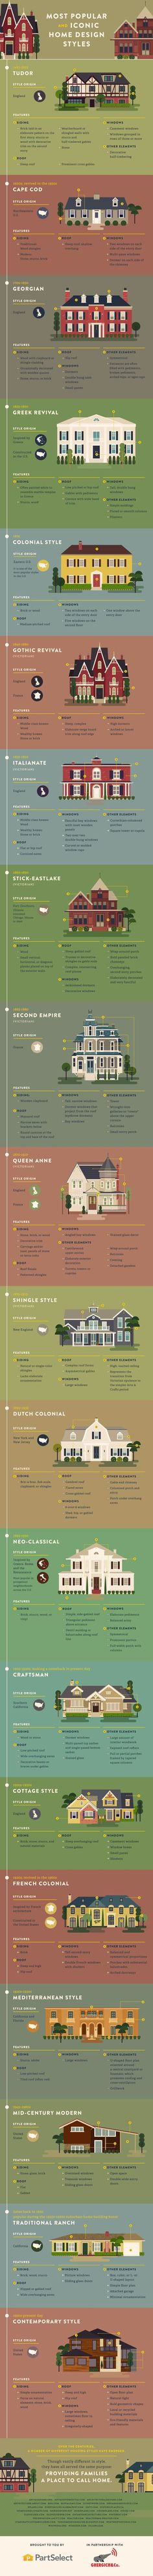 All About Every Single Popular And Iconic Home Exterior Style. Have You  Ever Wondered What